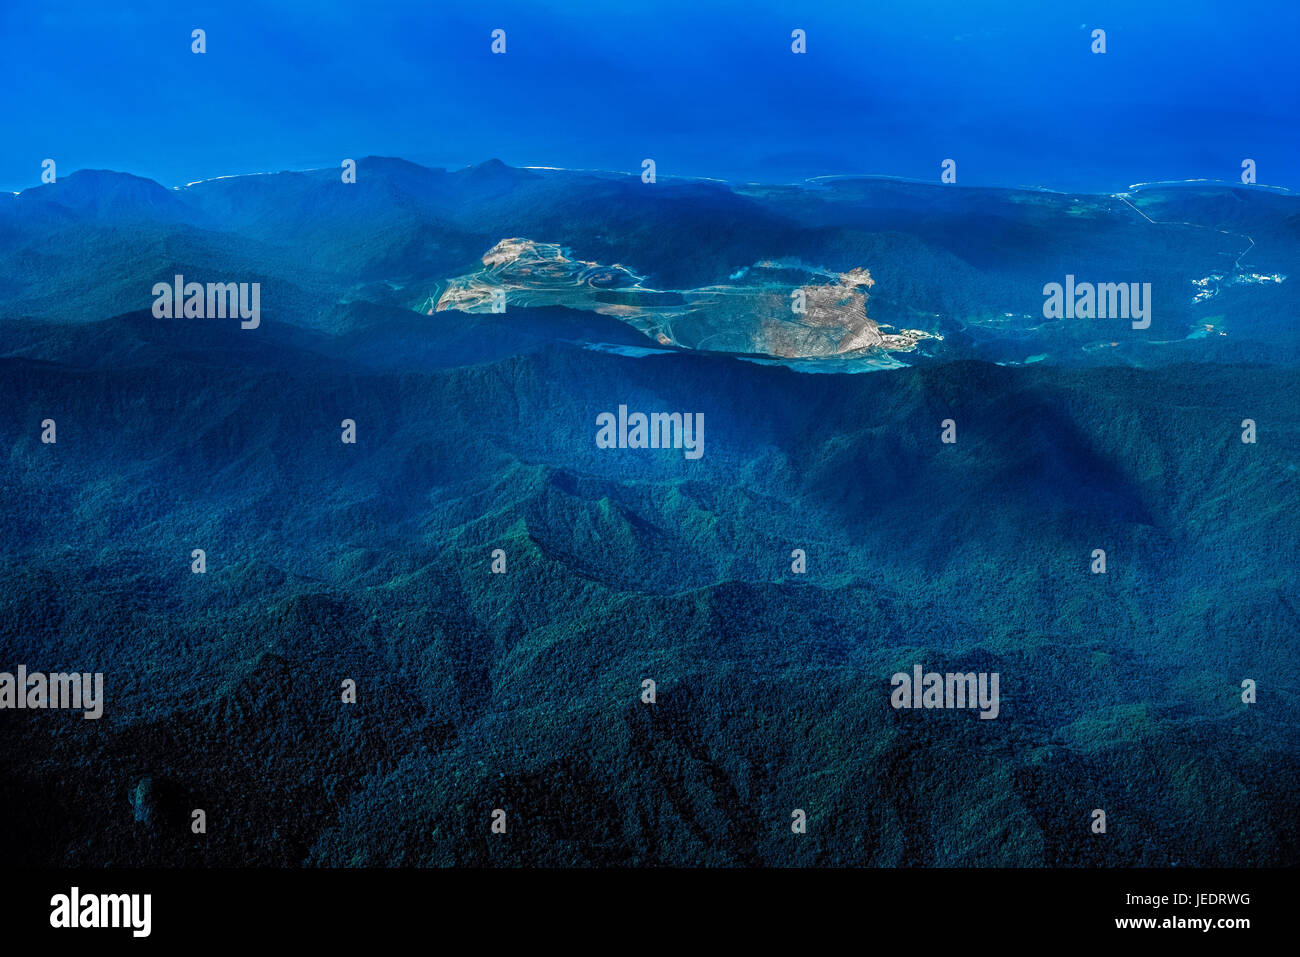 Batu Hijau mine, a gold and copper mine operated by Newmont Mining Corporation's subsidiary company, PT Newmont - Stock Image